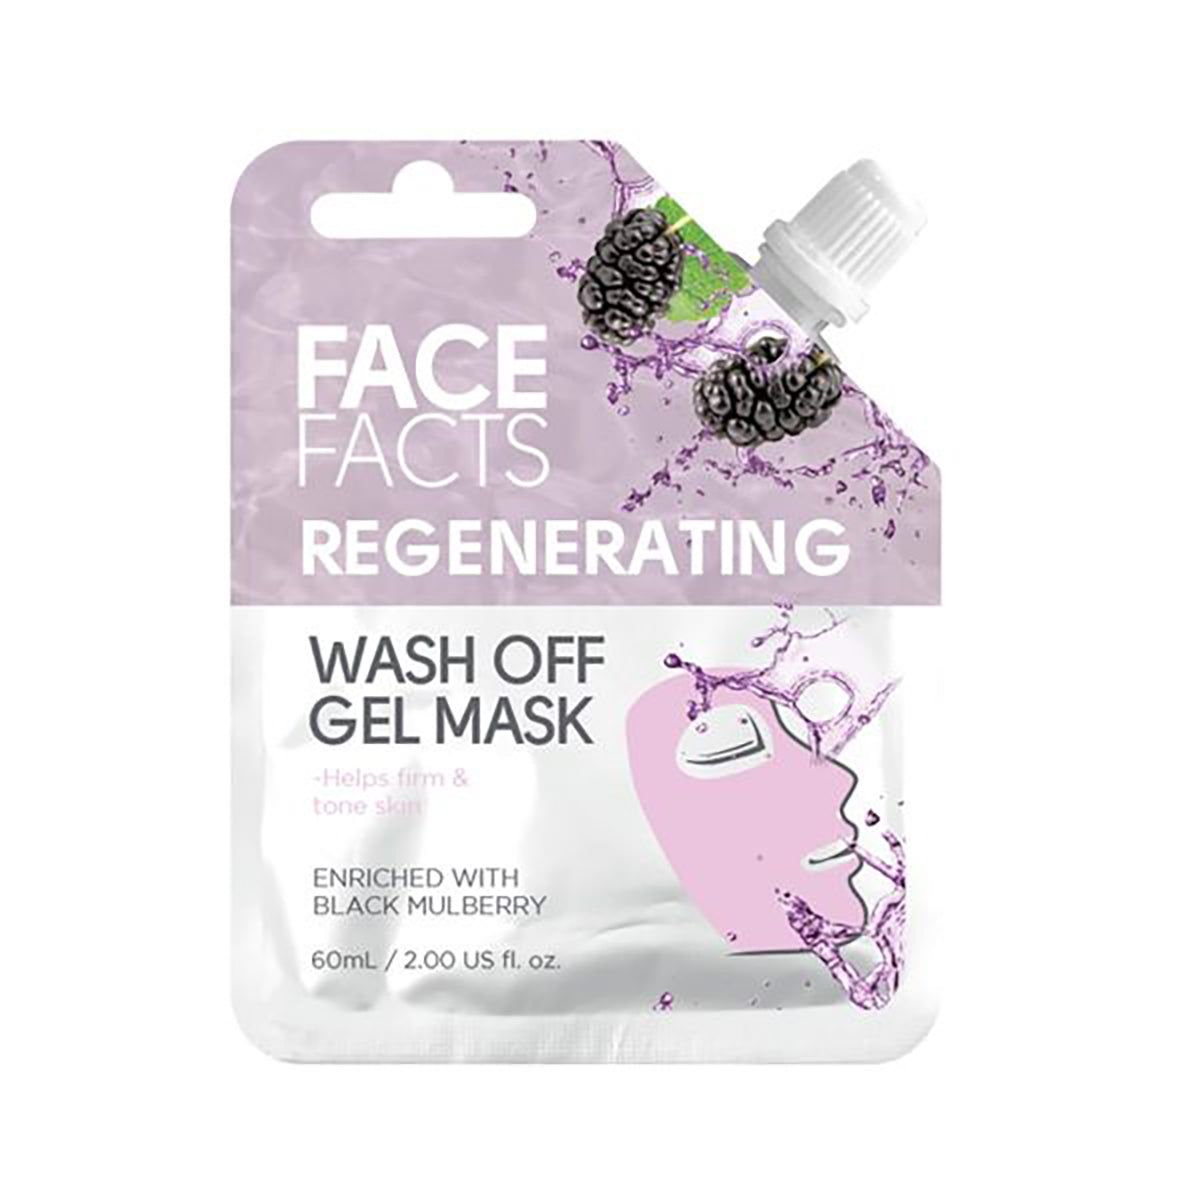 Face Facts Regenerating Wash off Mask